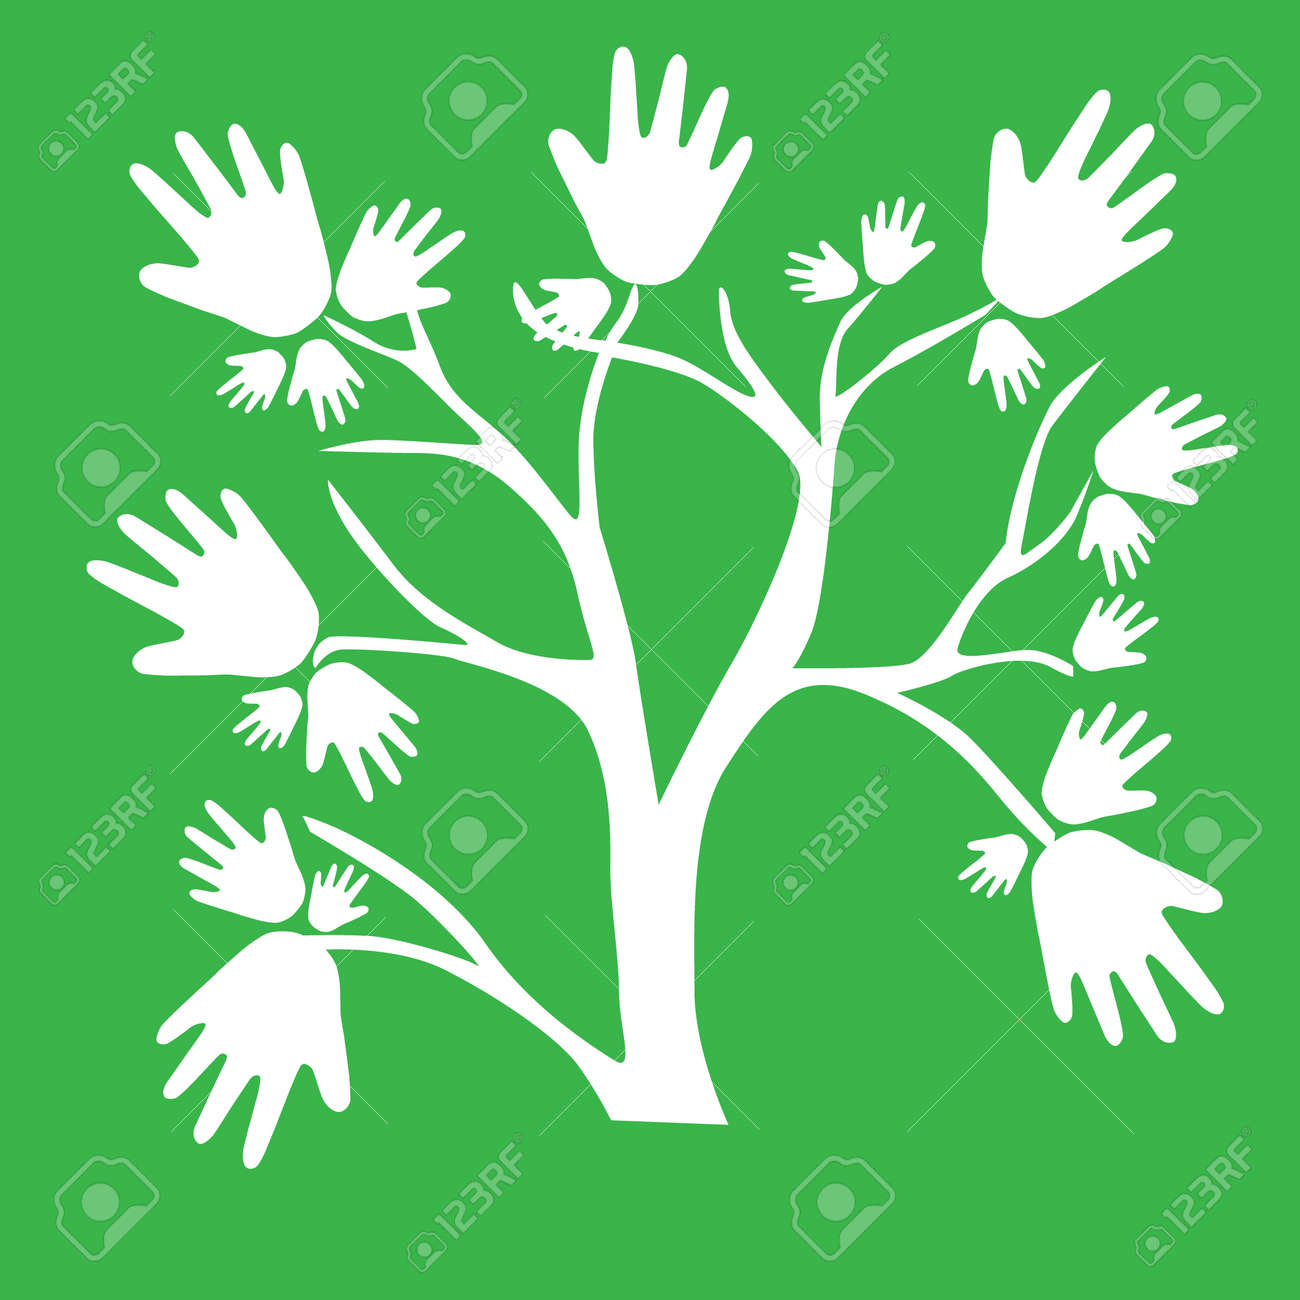 Eco friendly tree hands illustration for greeting card royalty eco friendly tree hands illustration for greeting card stock vector 22394975 kristyandbryce Images